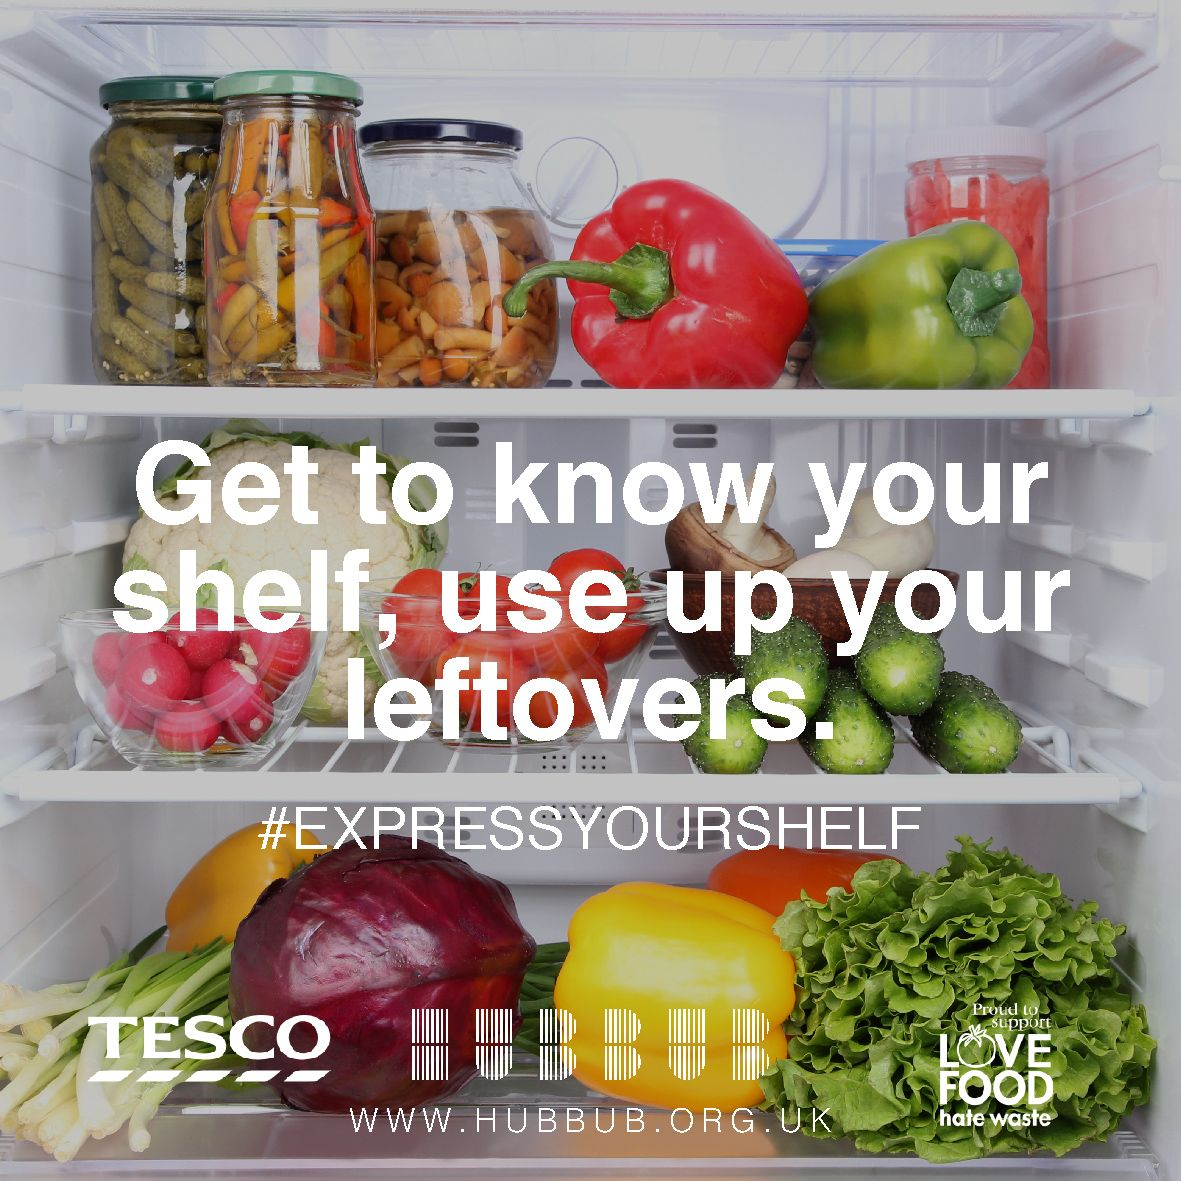 6 Tips For A Kitchen You Can Love For A Lifetime: Reduce Food Waste & #ExpressYourShelf